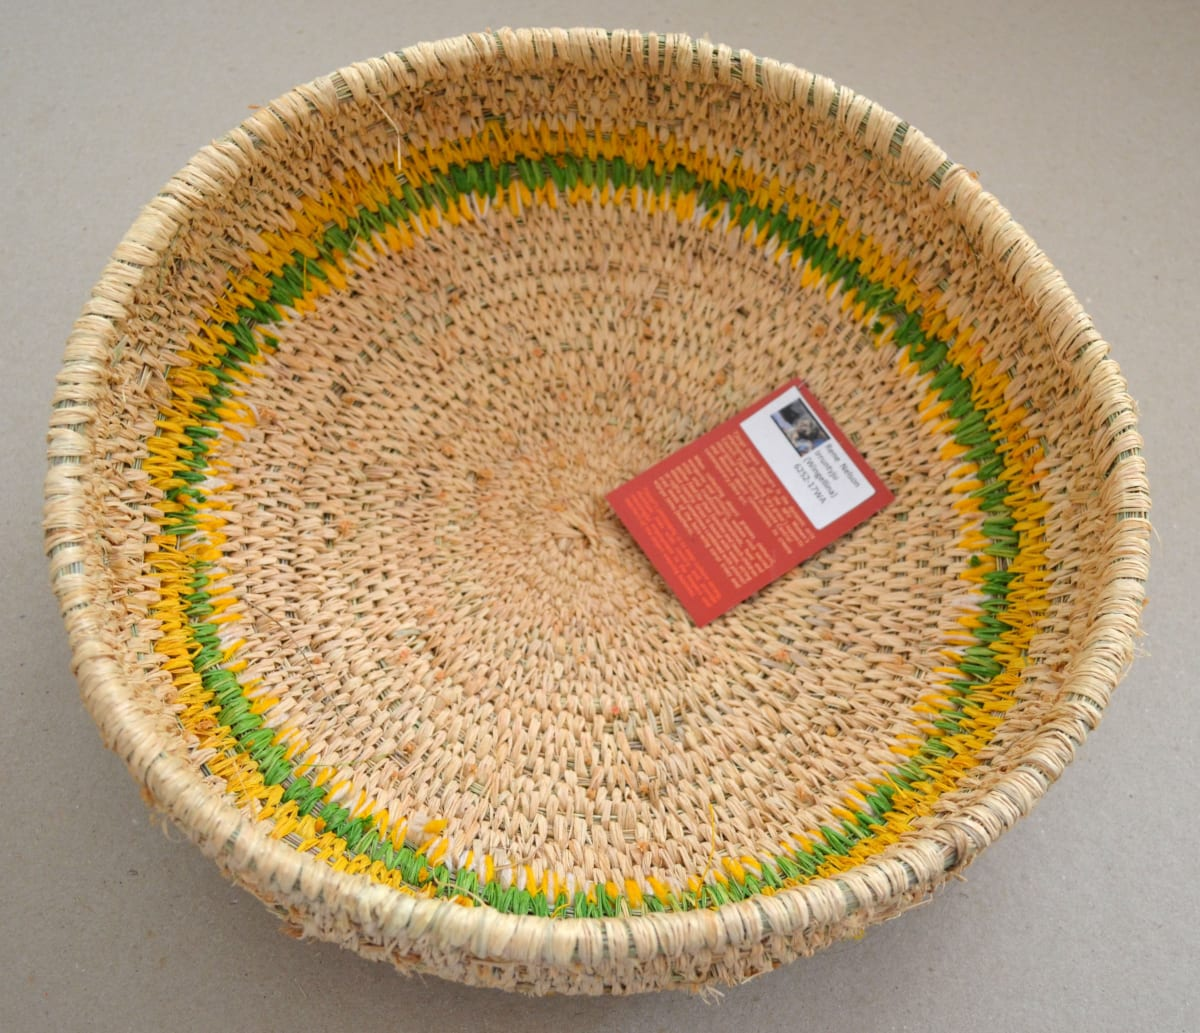 Rene Nelson Basket minarri grass and raffia 8 x 32 cm